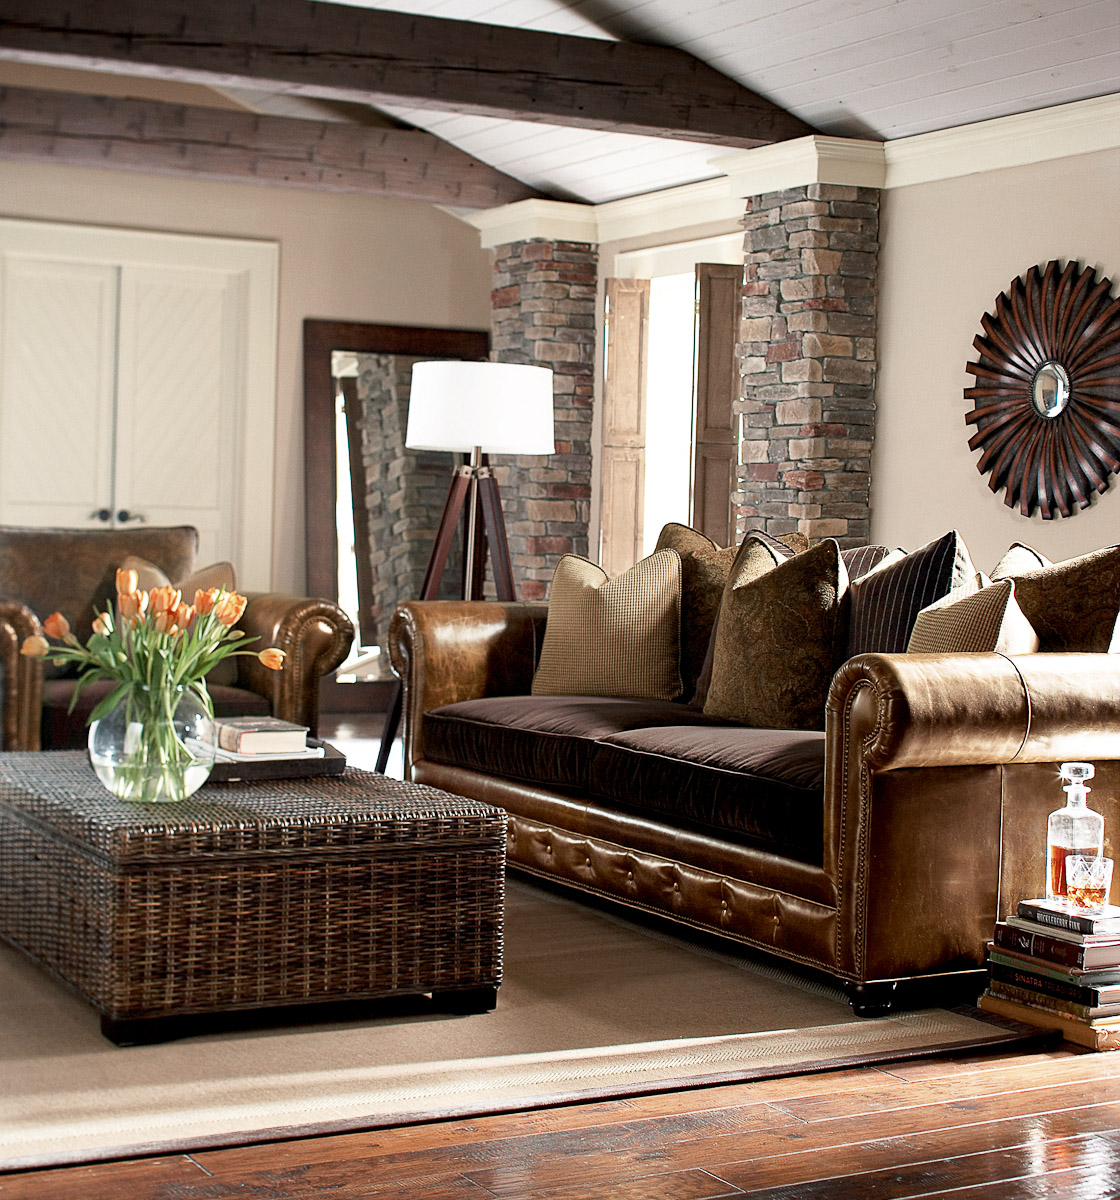 Stunning Living Room with Leather Furniture 1120 x 1200 · 505 kB · jpeg